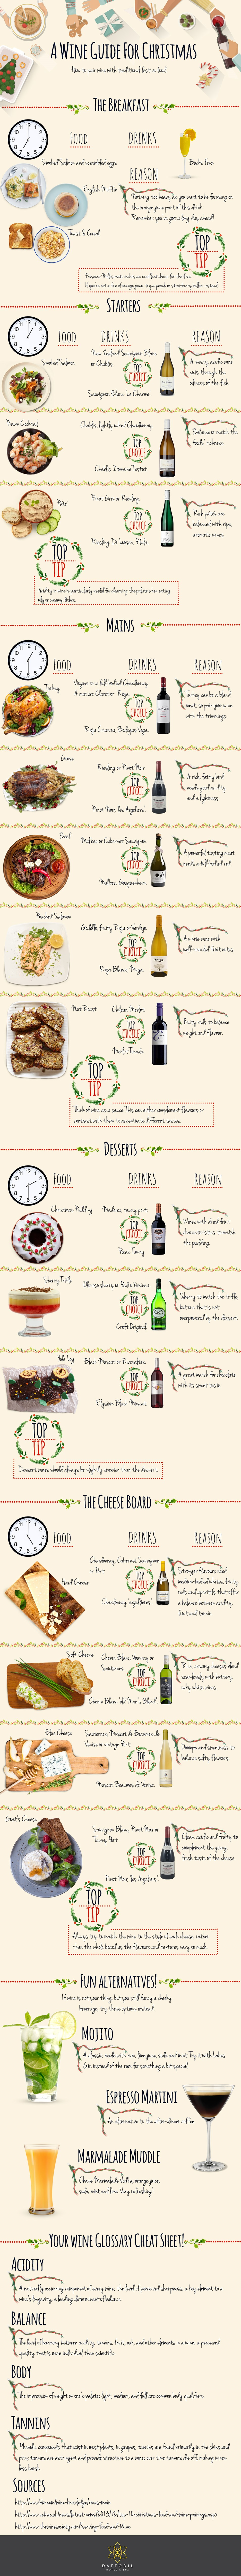 Christmas Wine Guide From The Daffodil Hotel